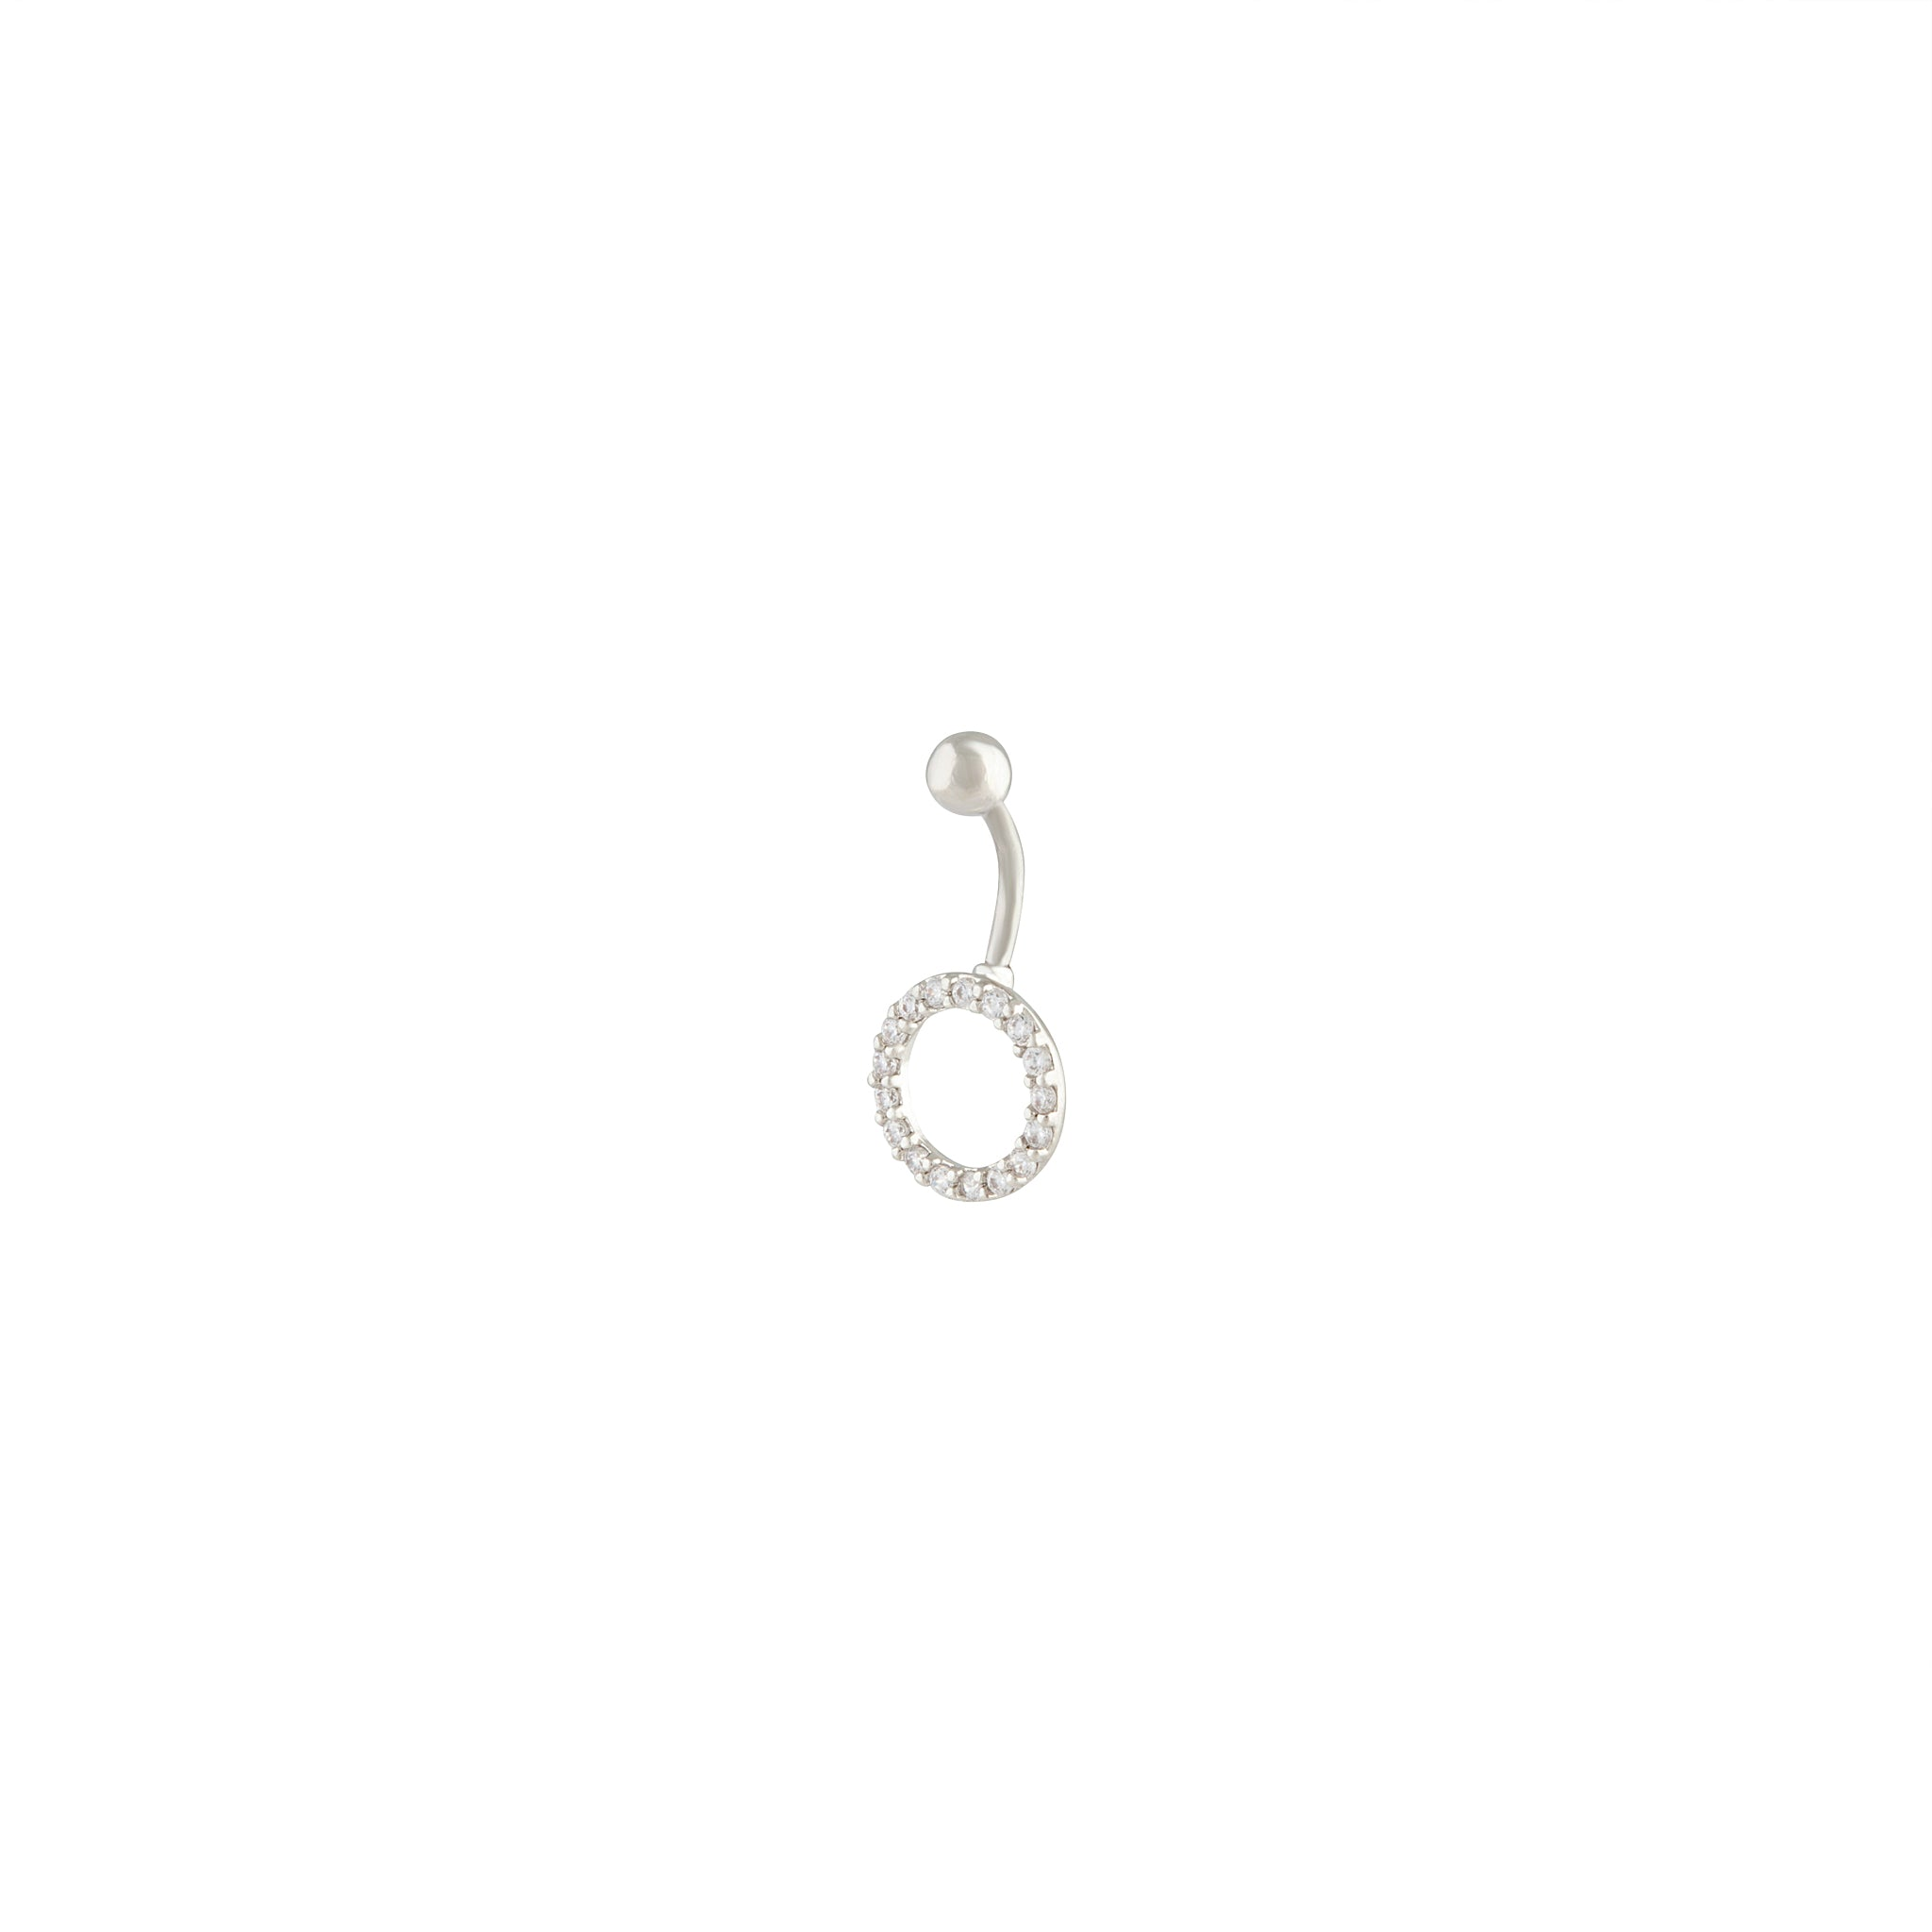 Rhodium Cubic Zirconia Open Ring Belly Bar